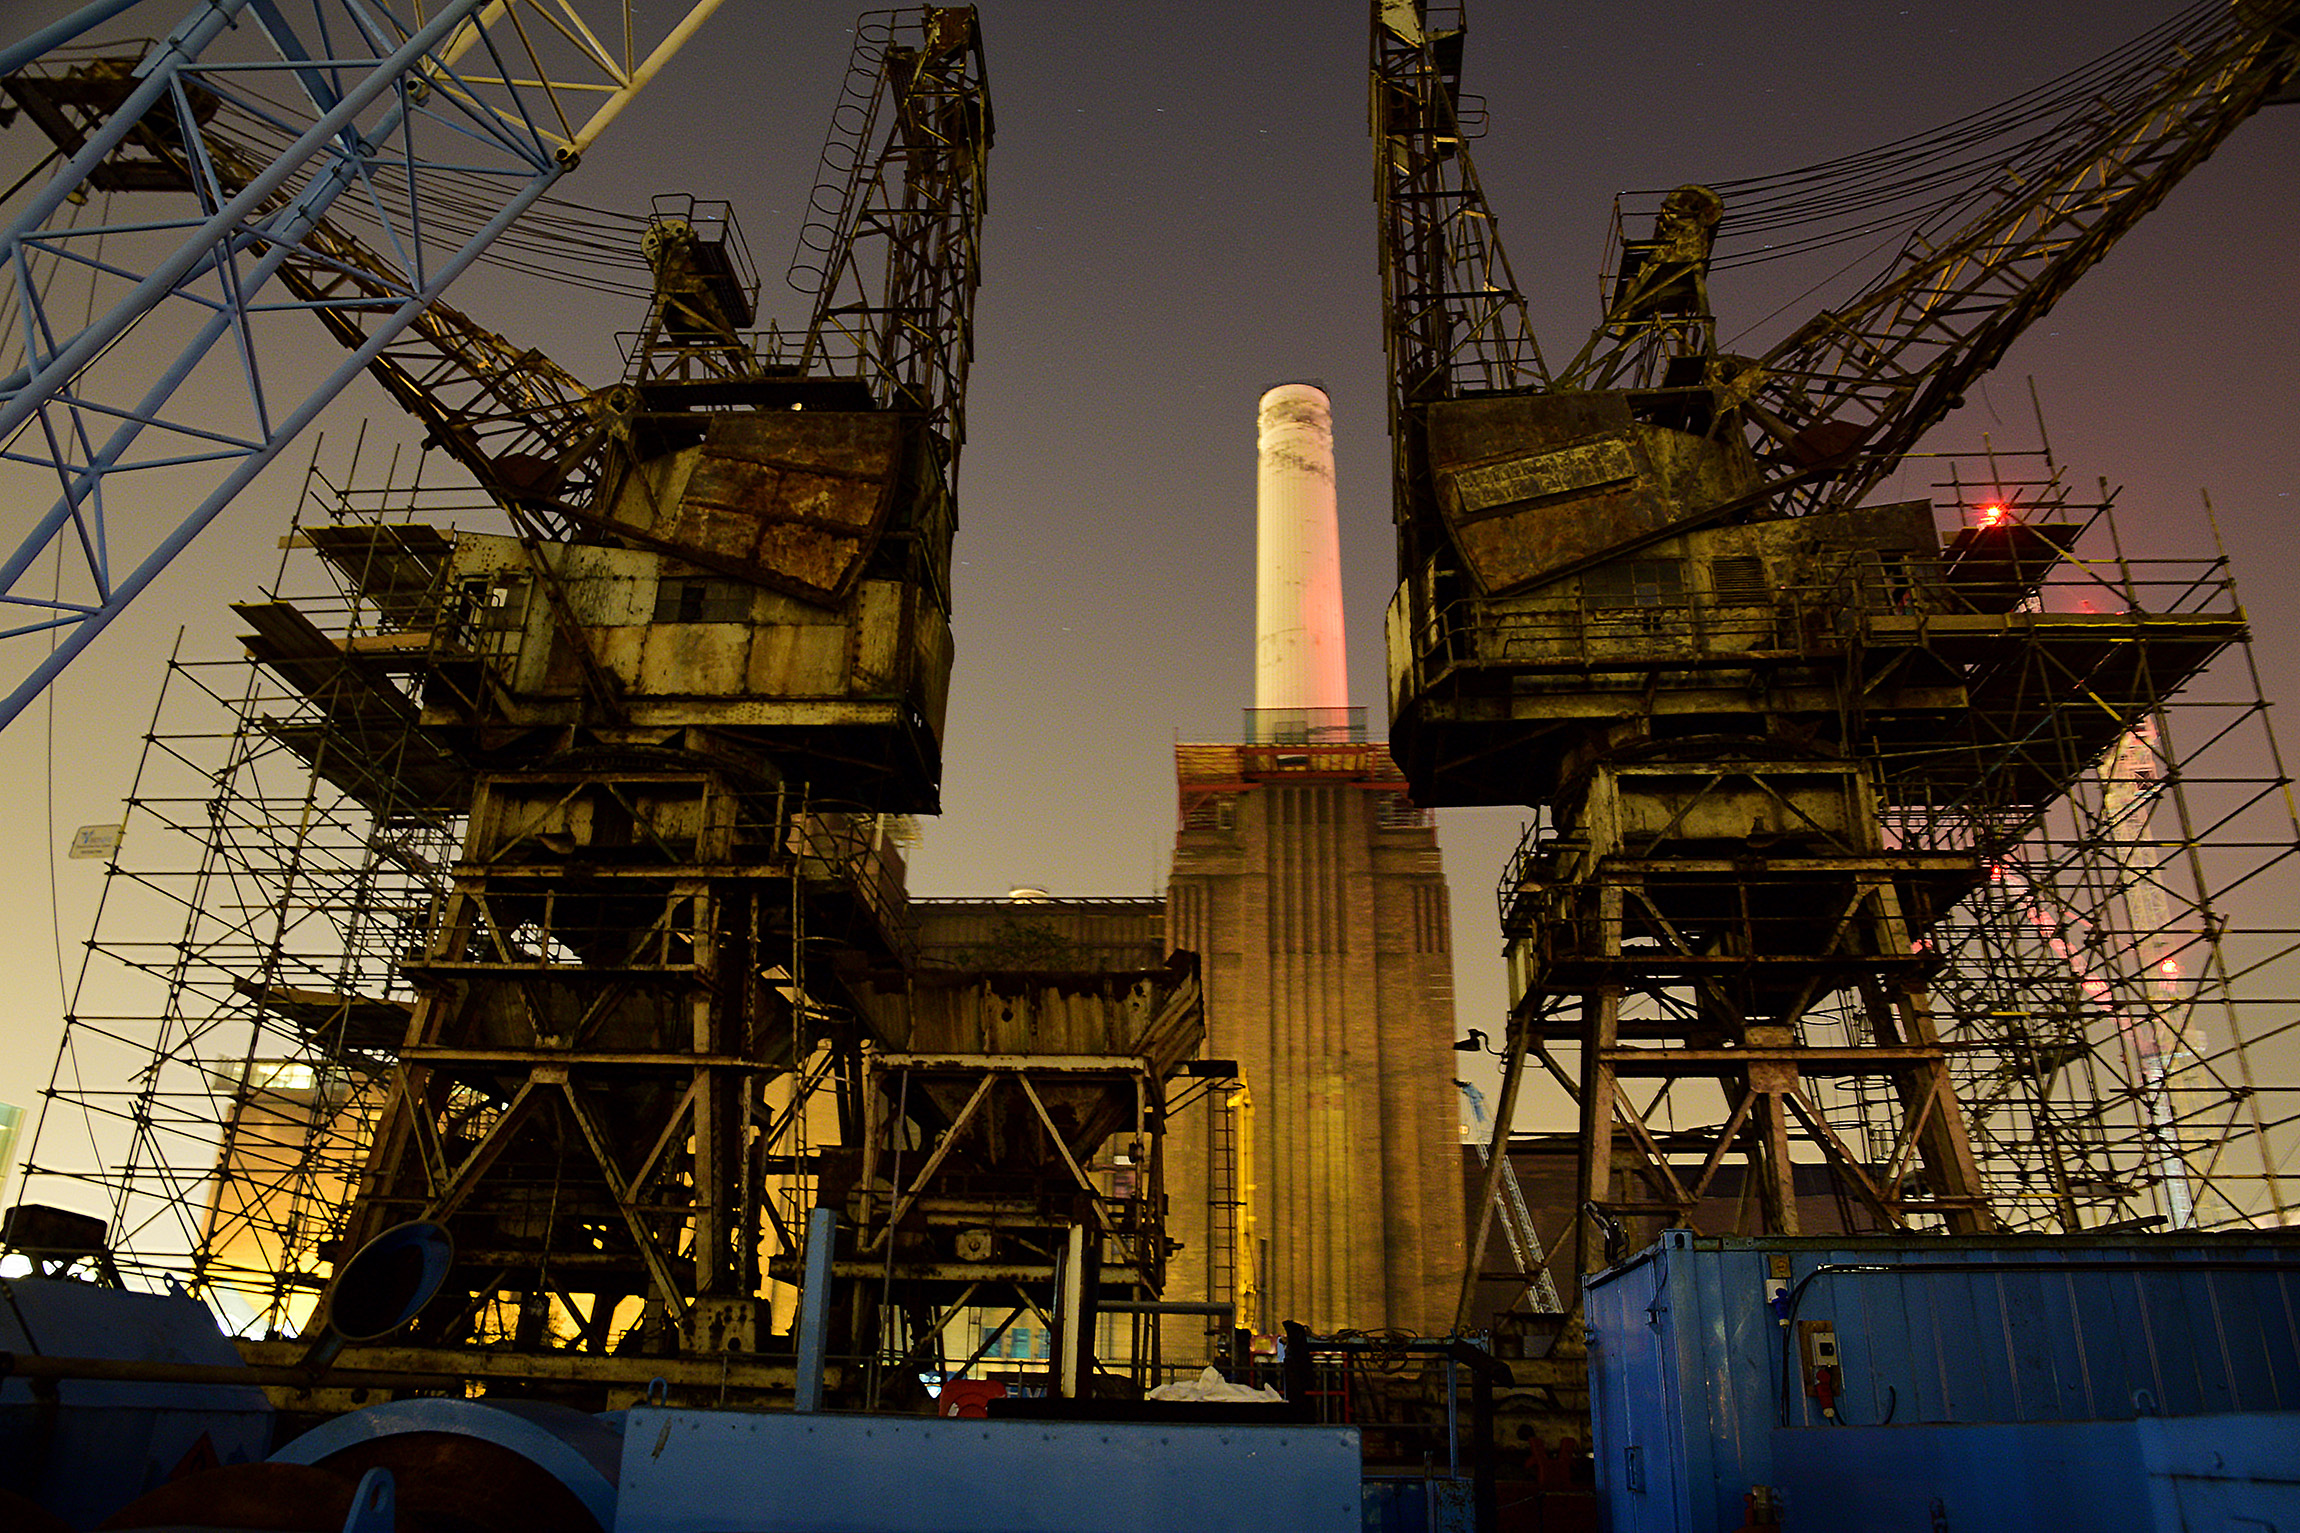 Under, In and On The Battersea Dock Cranes - After deciding to postpone another nearby event, we decided it was time to check these 2 small beauties out.Its quite a pleasant part of the site to get to because you feel quite out of the way, and at peace once you have got over onto the jetty.We took the original ladders up rather than the newly erected scaffold to 1)reduce our visibility and 2)experience the original way up. The wind was blowing in the right direction so that the park puppy didn't smell us.The cabin was a rank odorous aviary full of crazy birds. They couldn't find a way out whilst I was in there and so they did continual kamikaze dives into the glass and then into my face. It made quite a noise. I had one of those 'why on earth am I here' moments in there.Photography conditions were terrible - dark, cramped, no easy place to put tripod. The part off the jetty bobbing up and down. Most of my shots were on a totally guessed focus as it wouldn't lock, and lighting with torches was definitely no-no.A pleasant walk down the river finished this rather lovely outing.